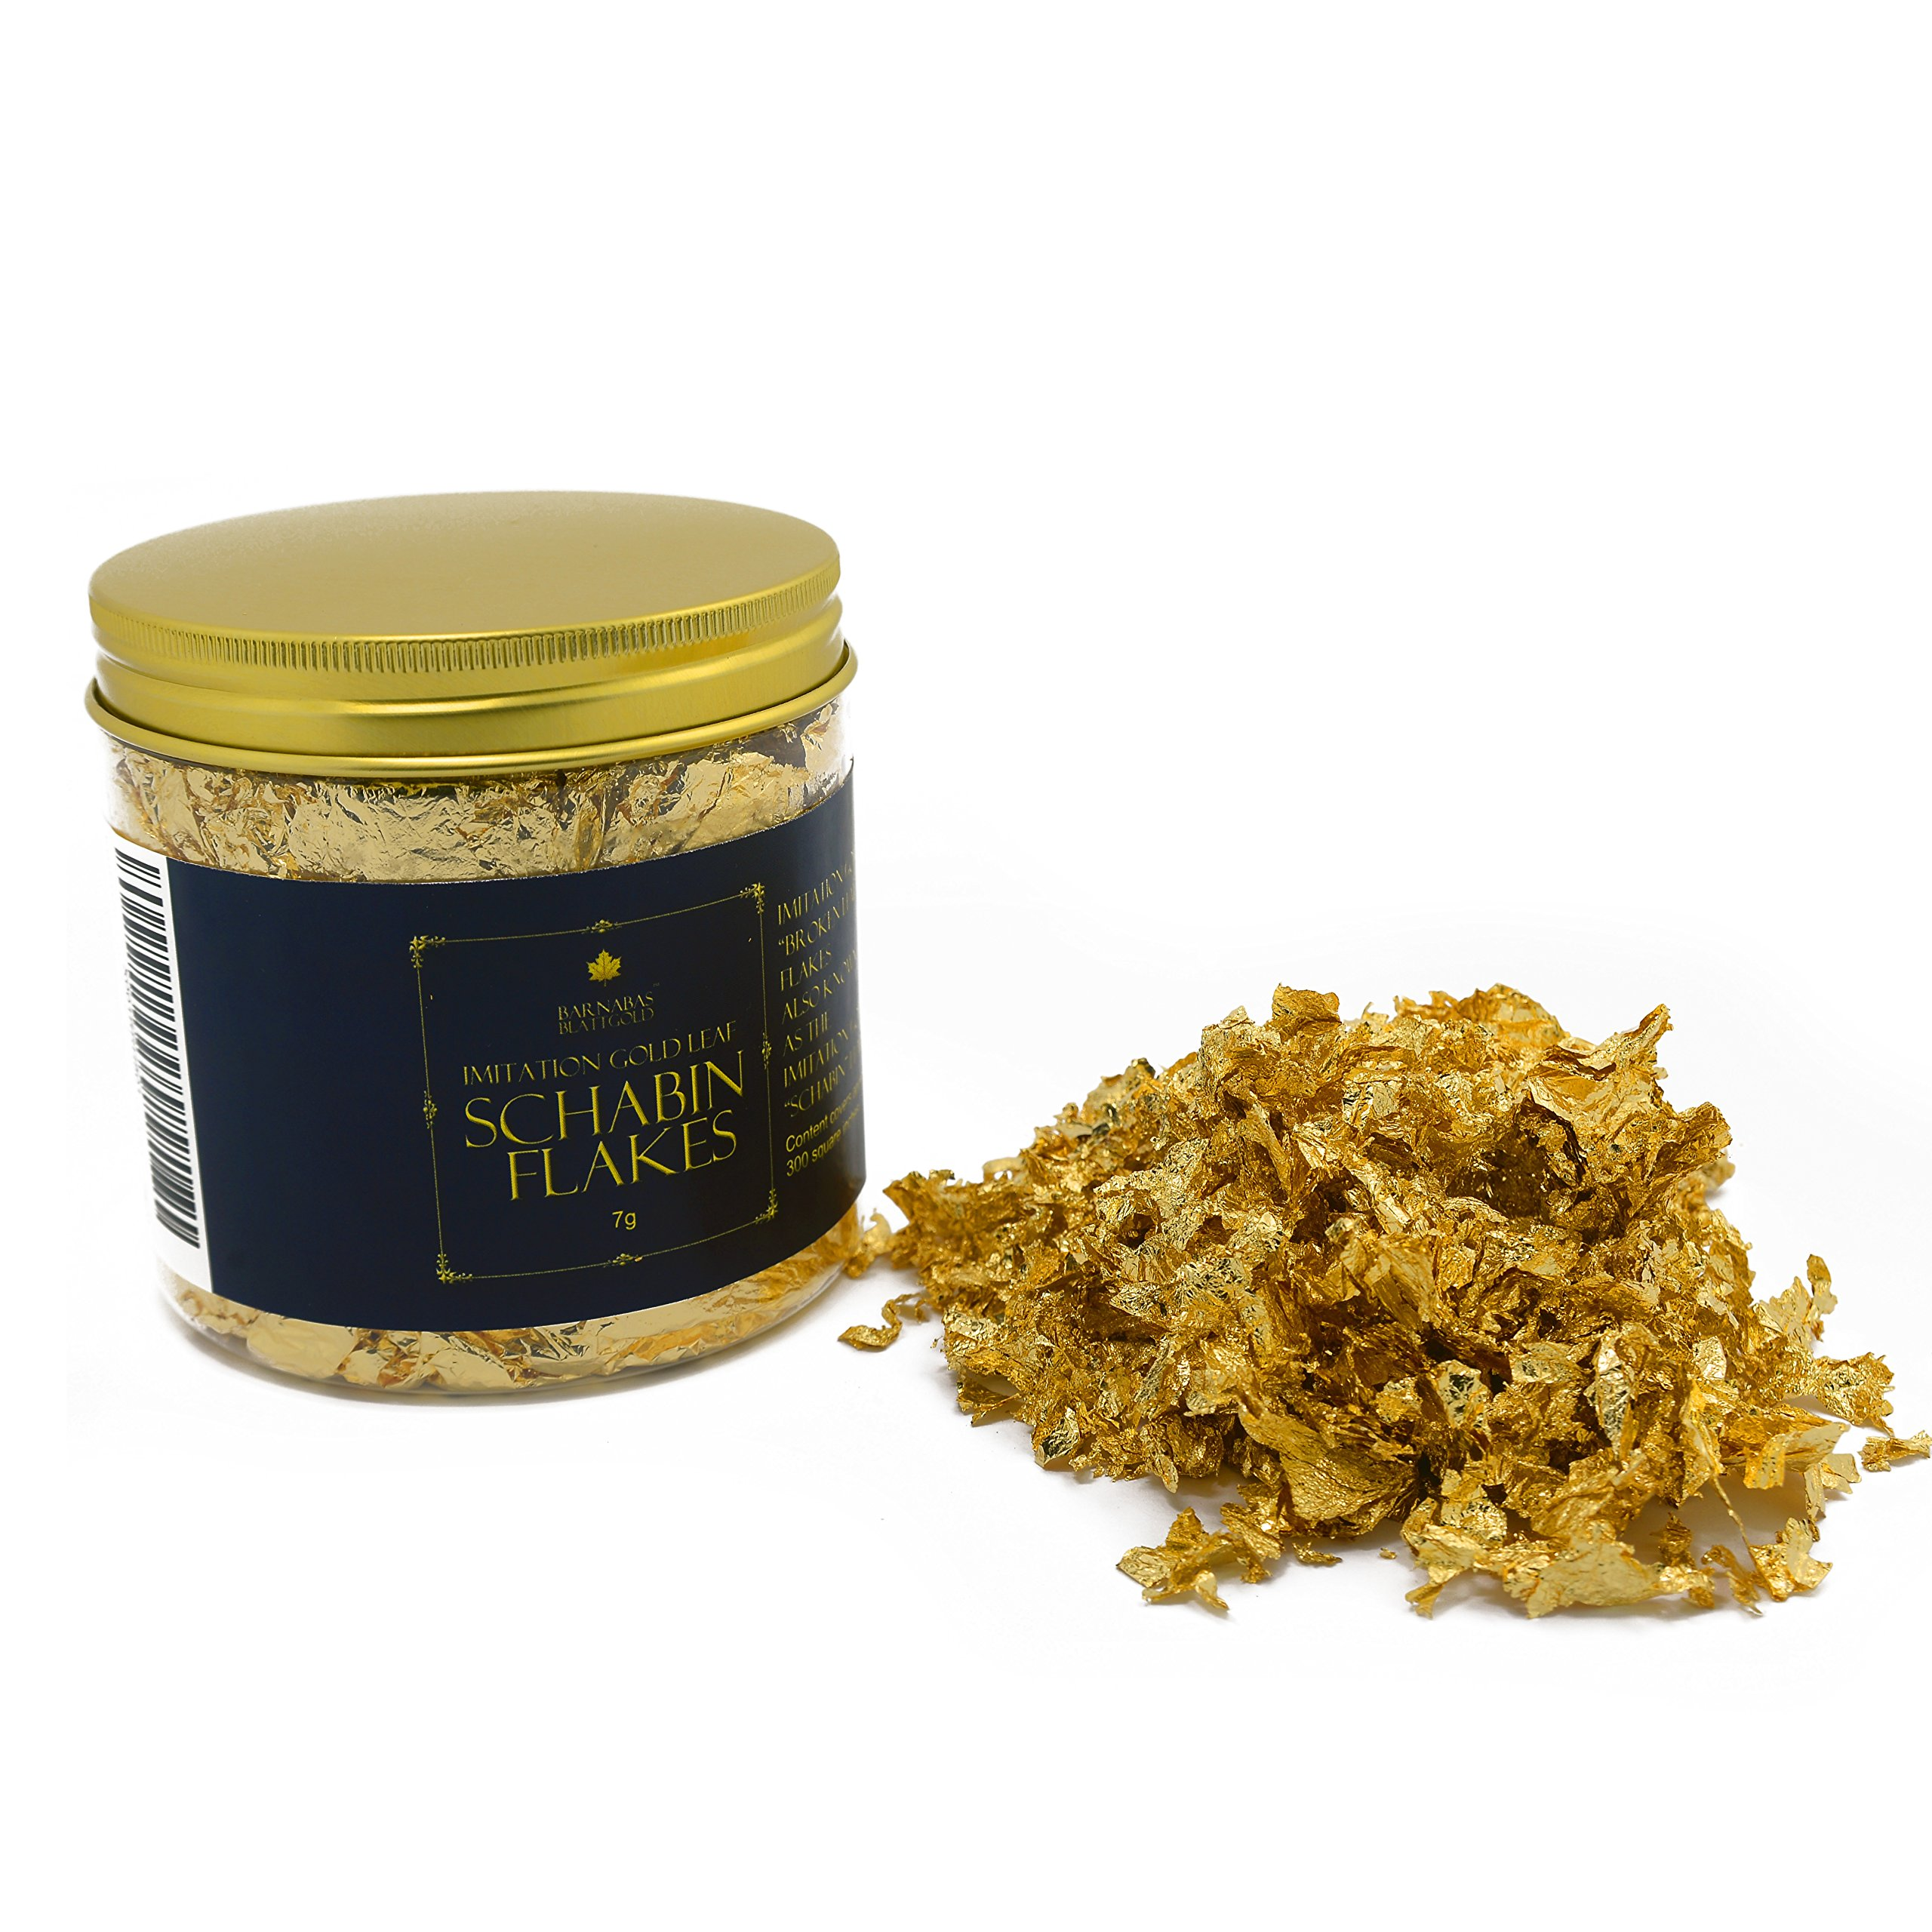 Imitation Gold Leaf Schabin Flakes Metallic Foil Flakes for Gilding, Painting Arts and Crafts (16oz jar)